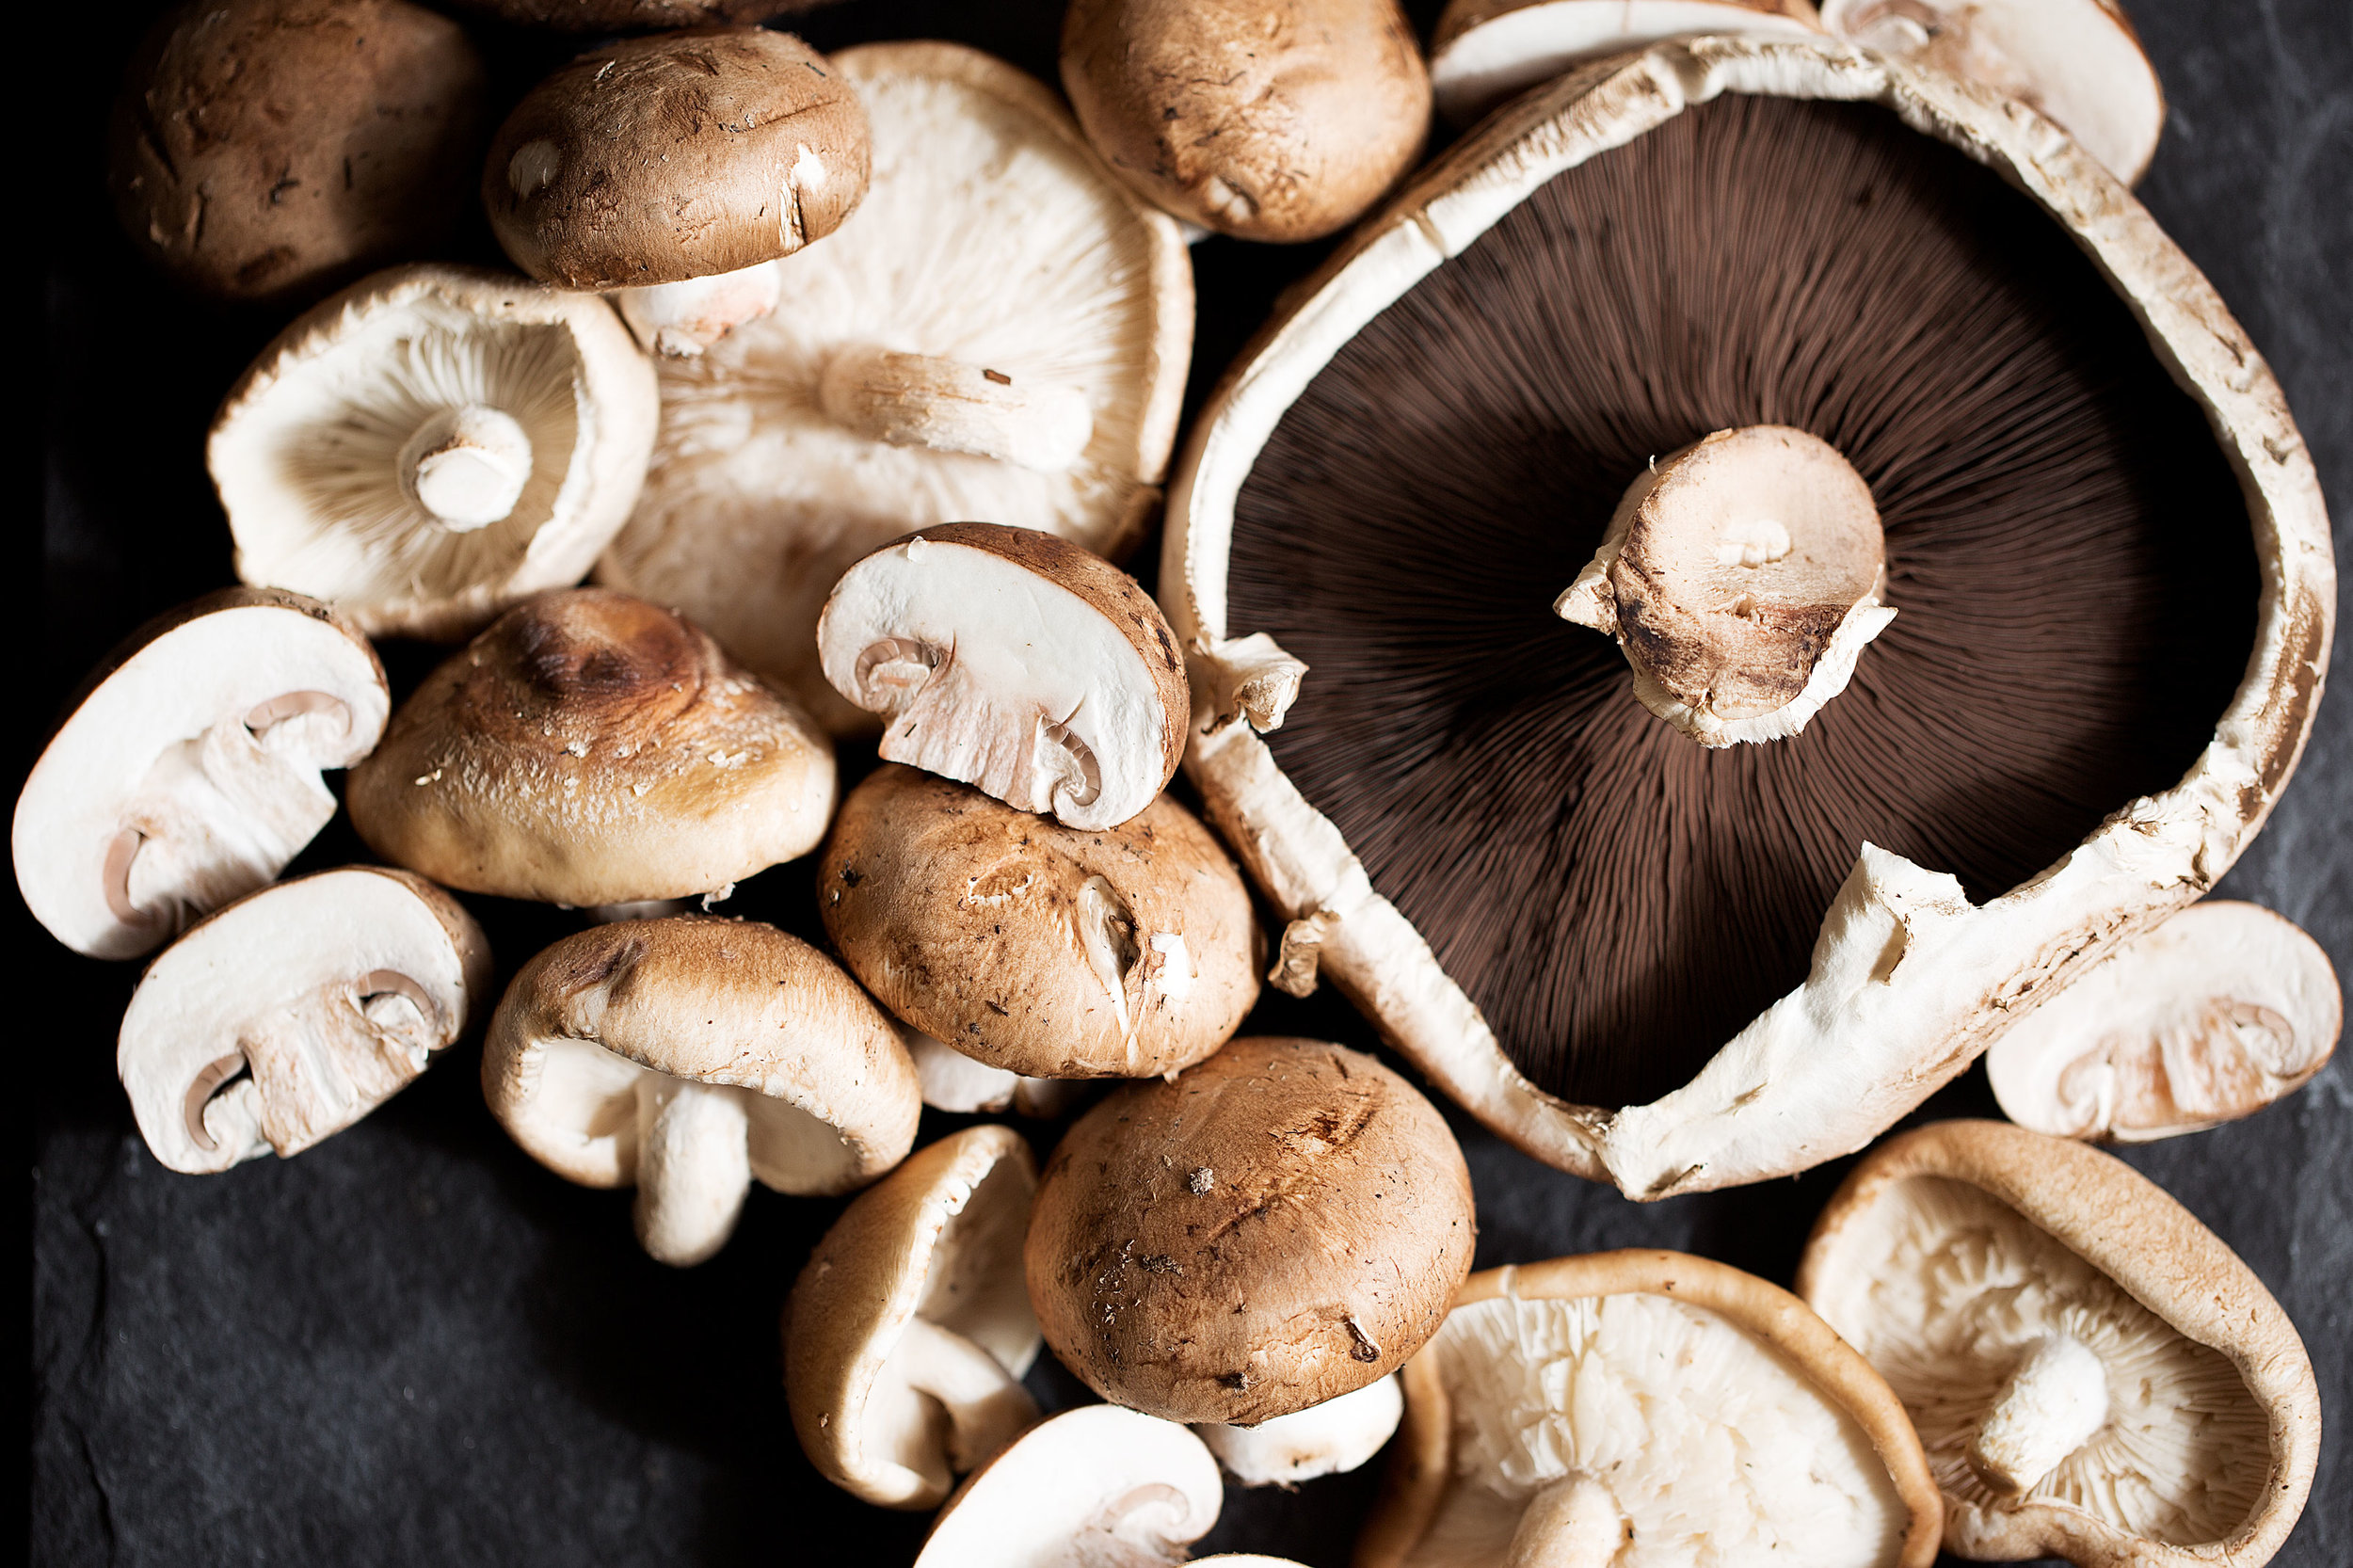 raw food photography mixed mushrooms